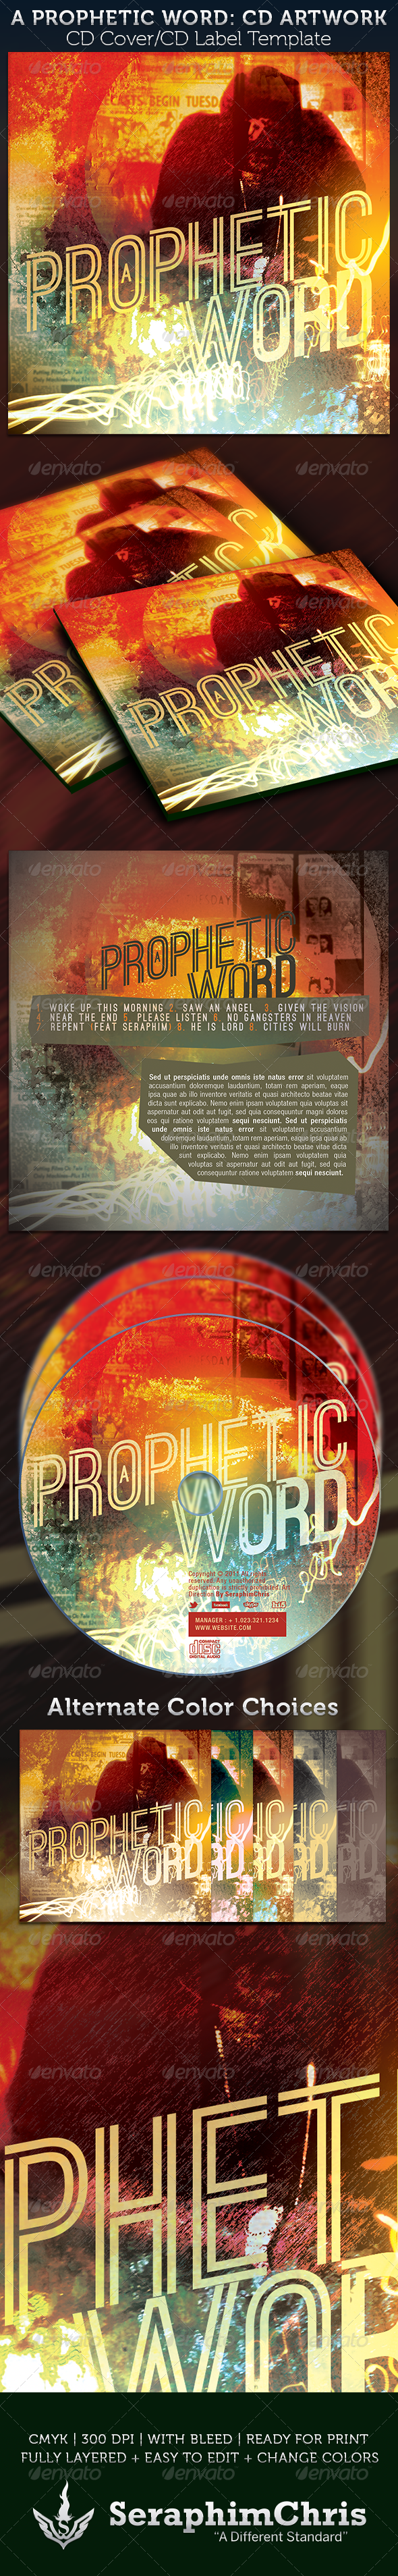 GraphicRiver Prophetic Word CD Cover Artwork Template 3688154